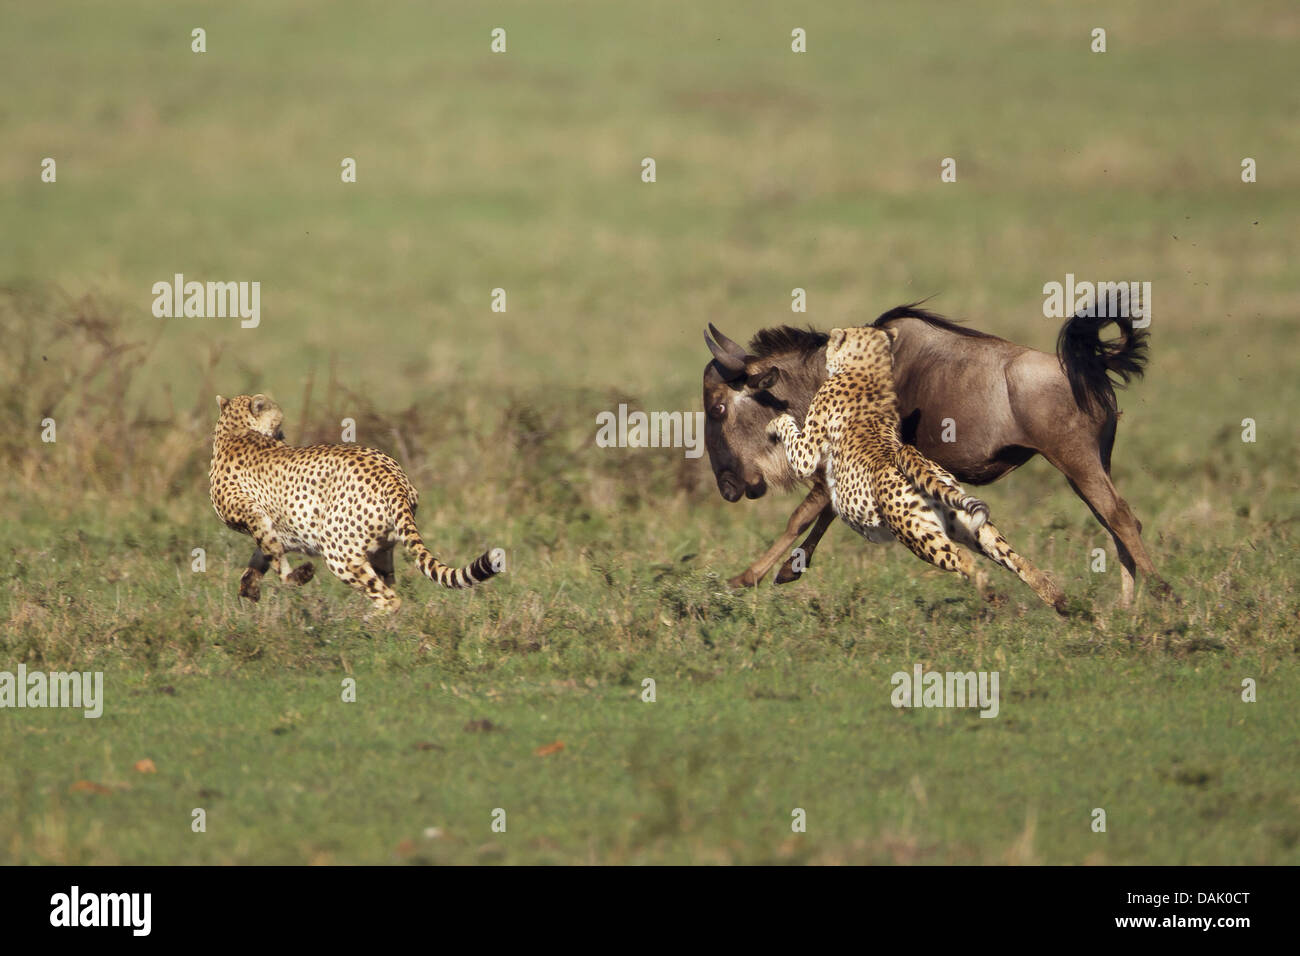 Cheetahs (Acinonyx jubatus) chasing a young Blue Wildebeest (Connochaetes taurinus) - Stock Image